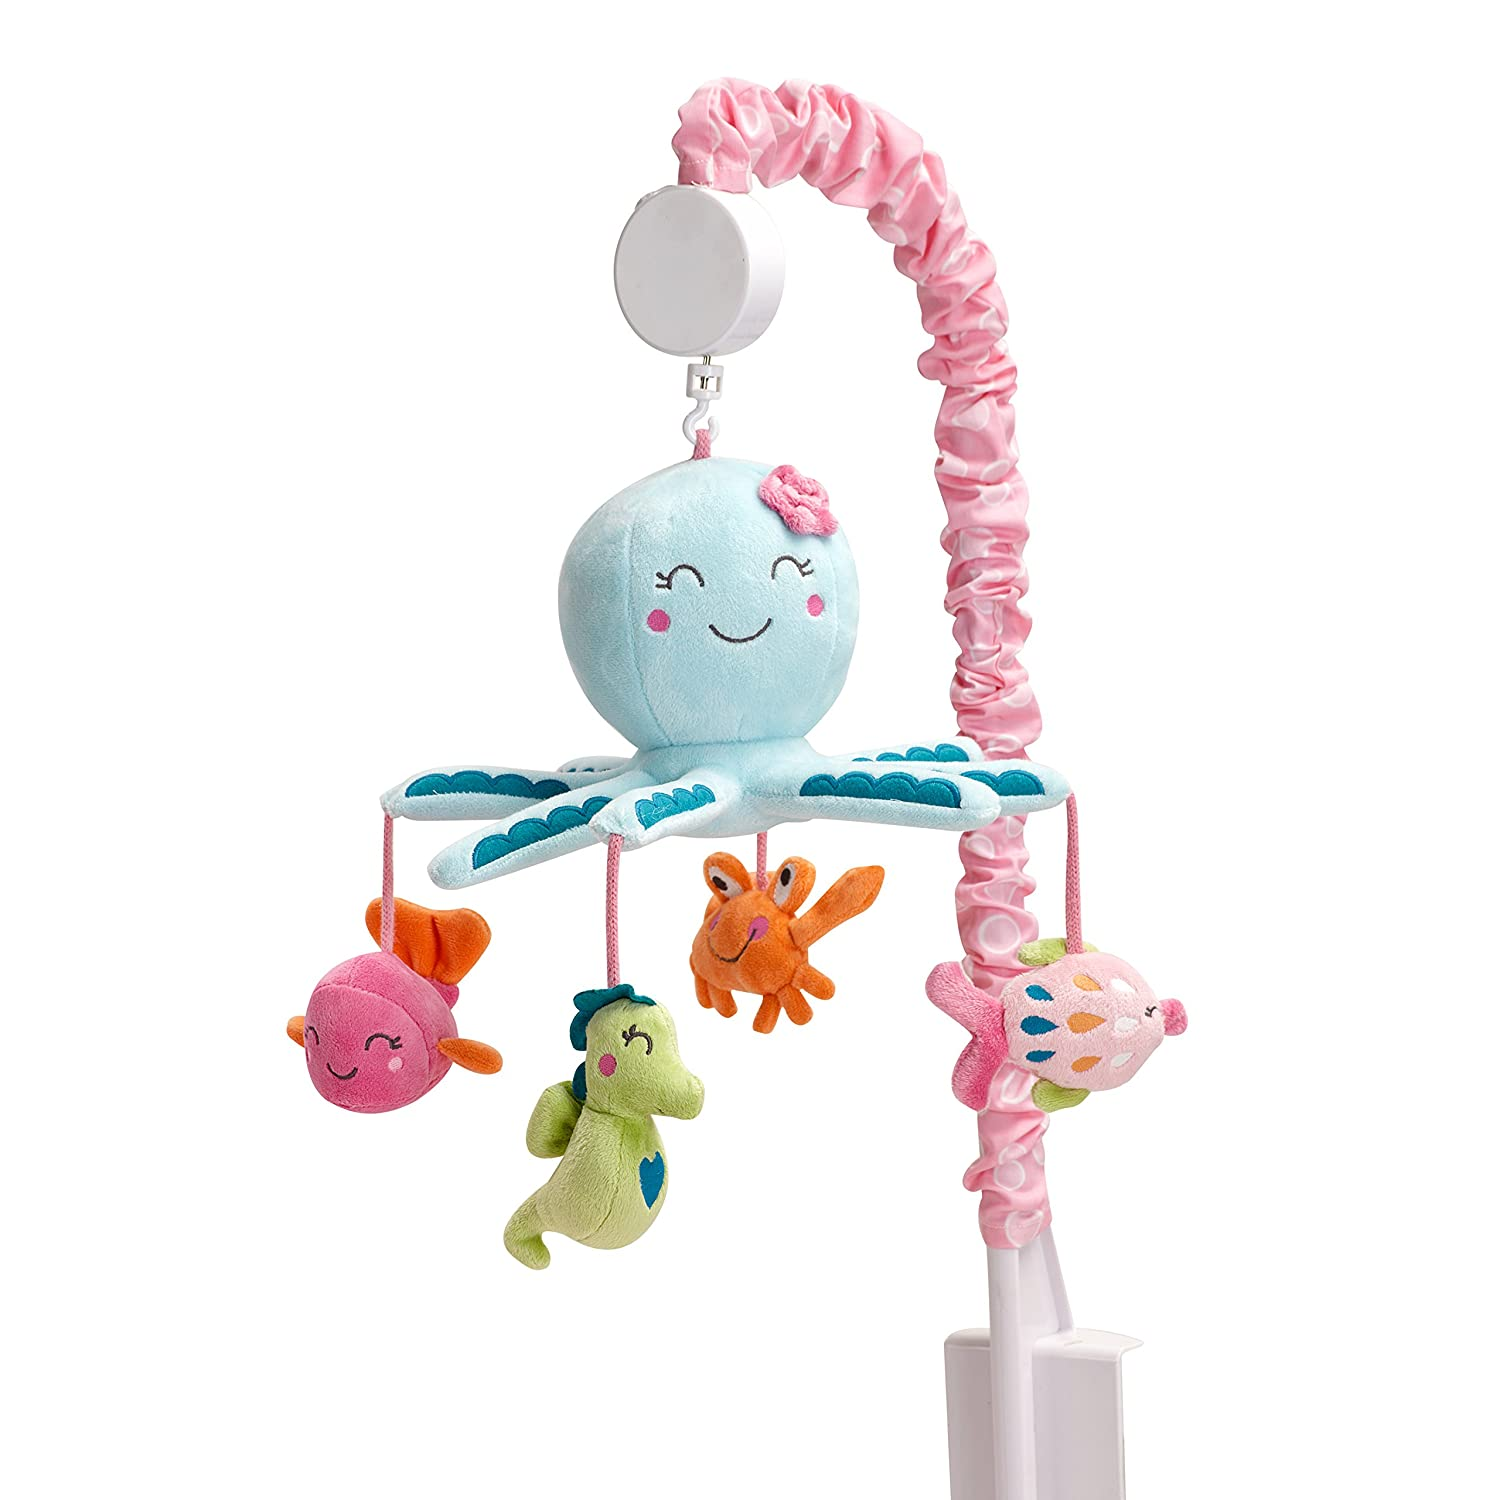 amazoncom  carter's pond collection musical mobile  baby -